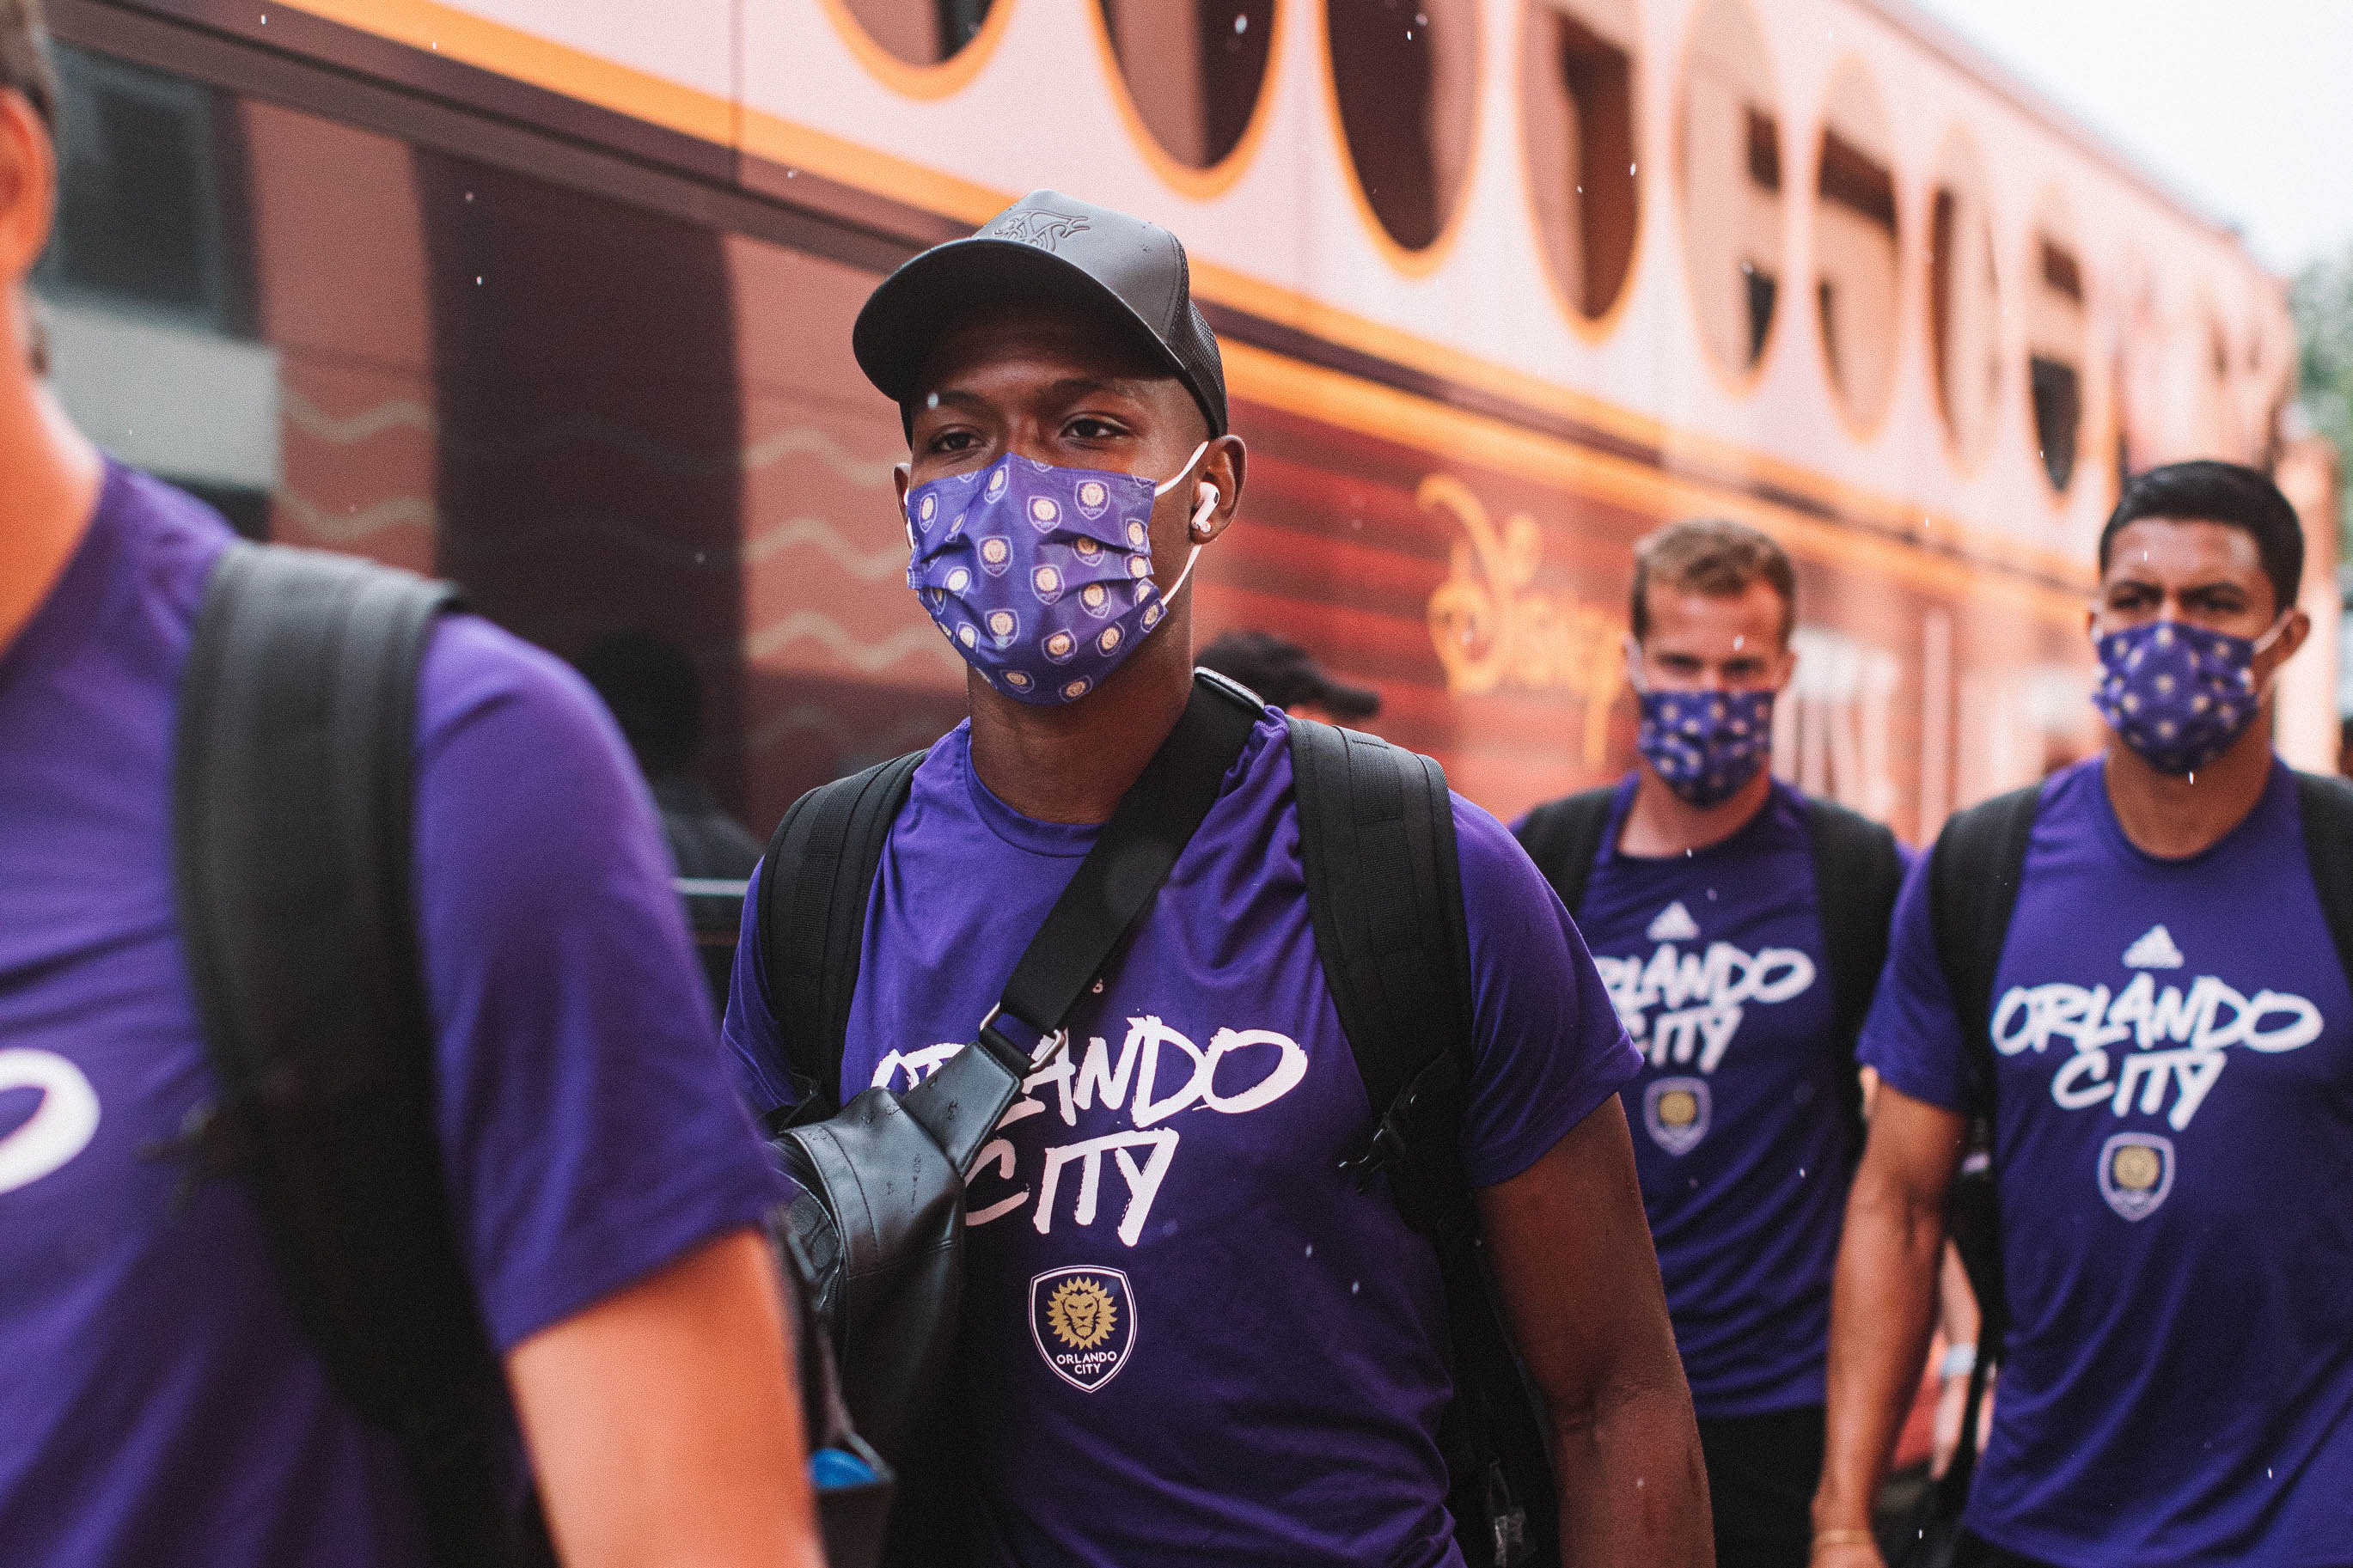 Arrival to Hotel on 06_25 - Orlando City SC - Swan Hotel_m1216